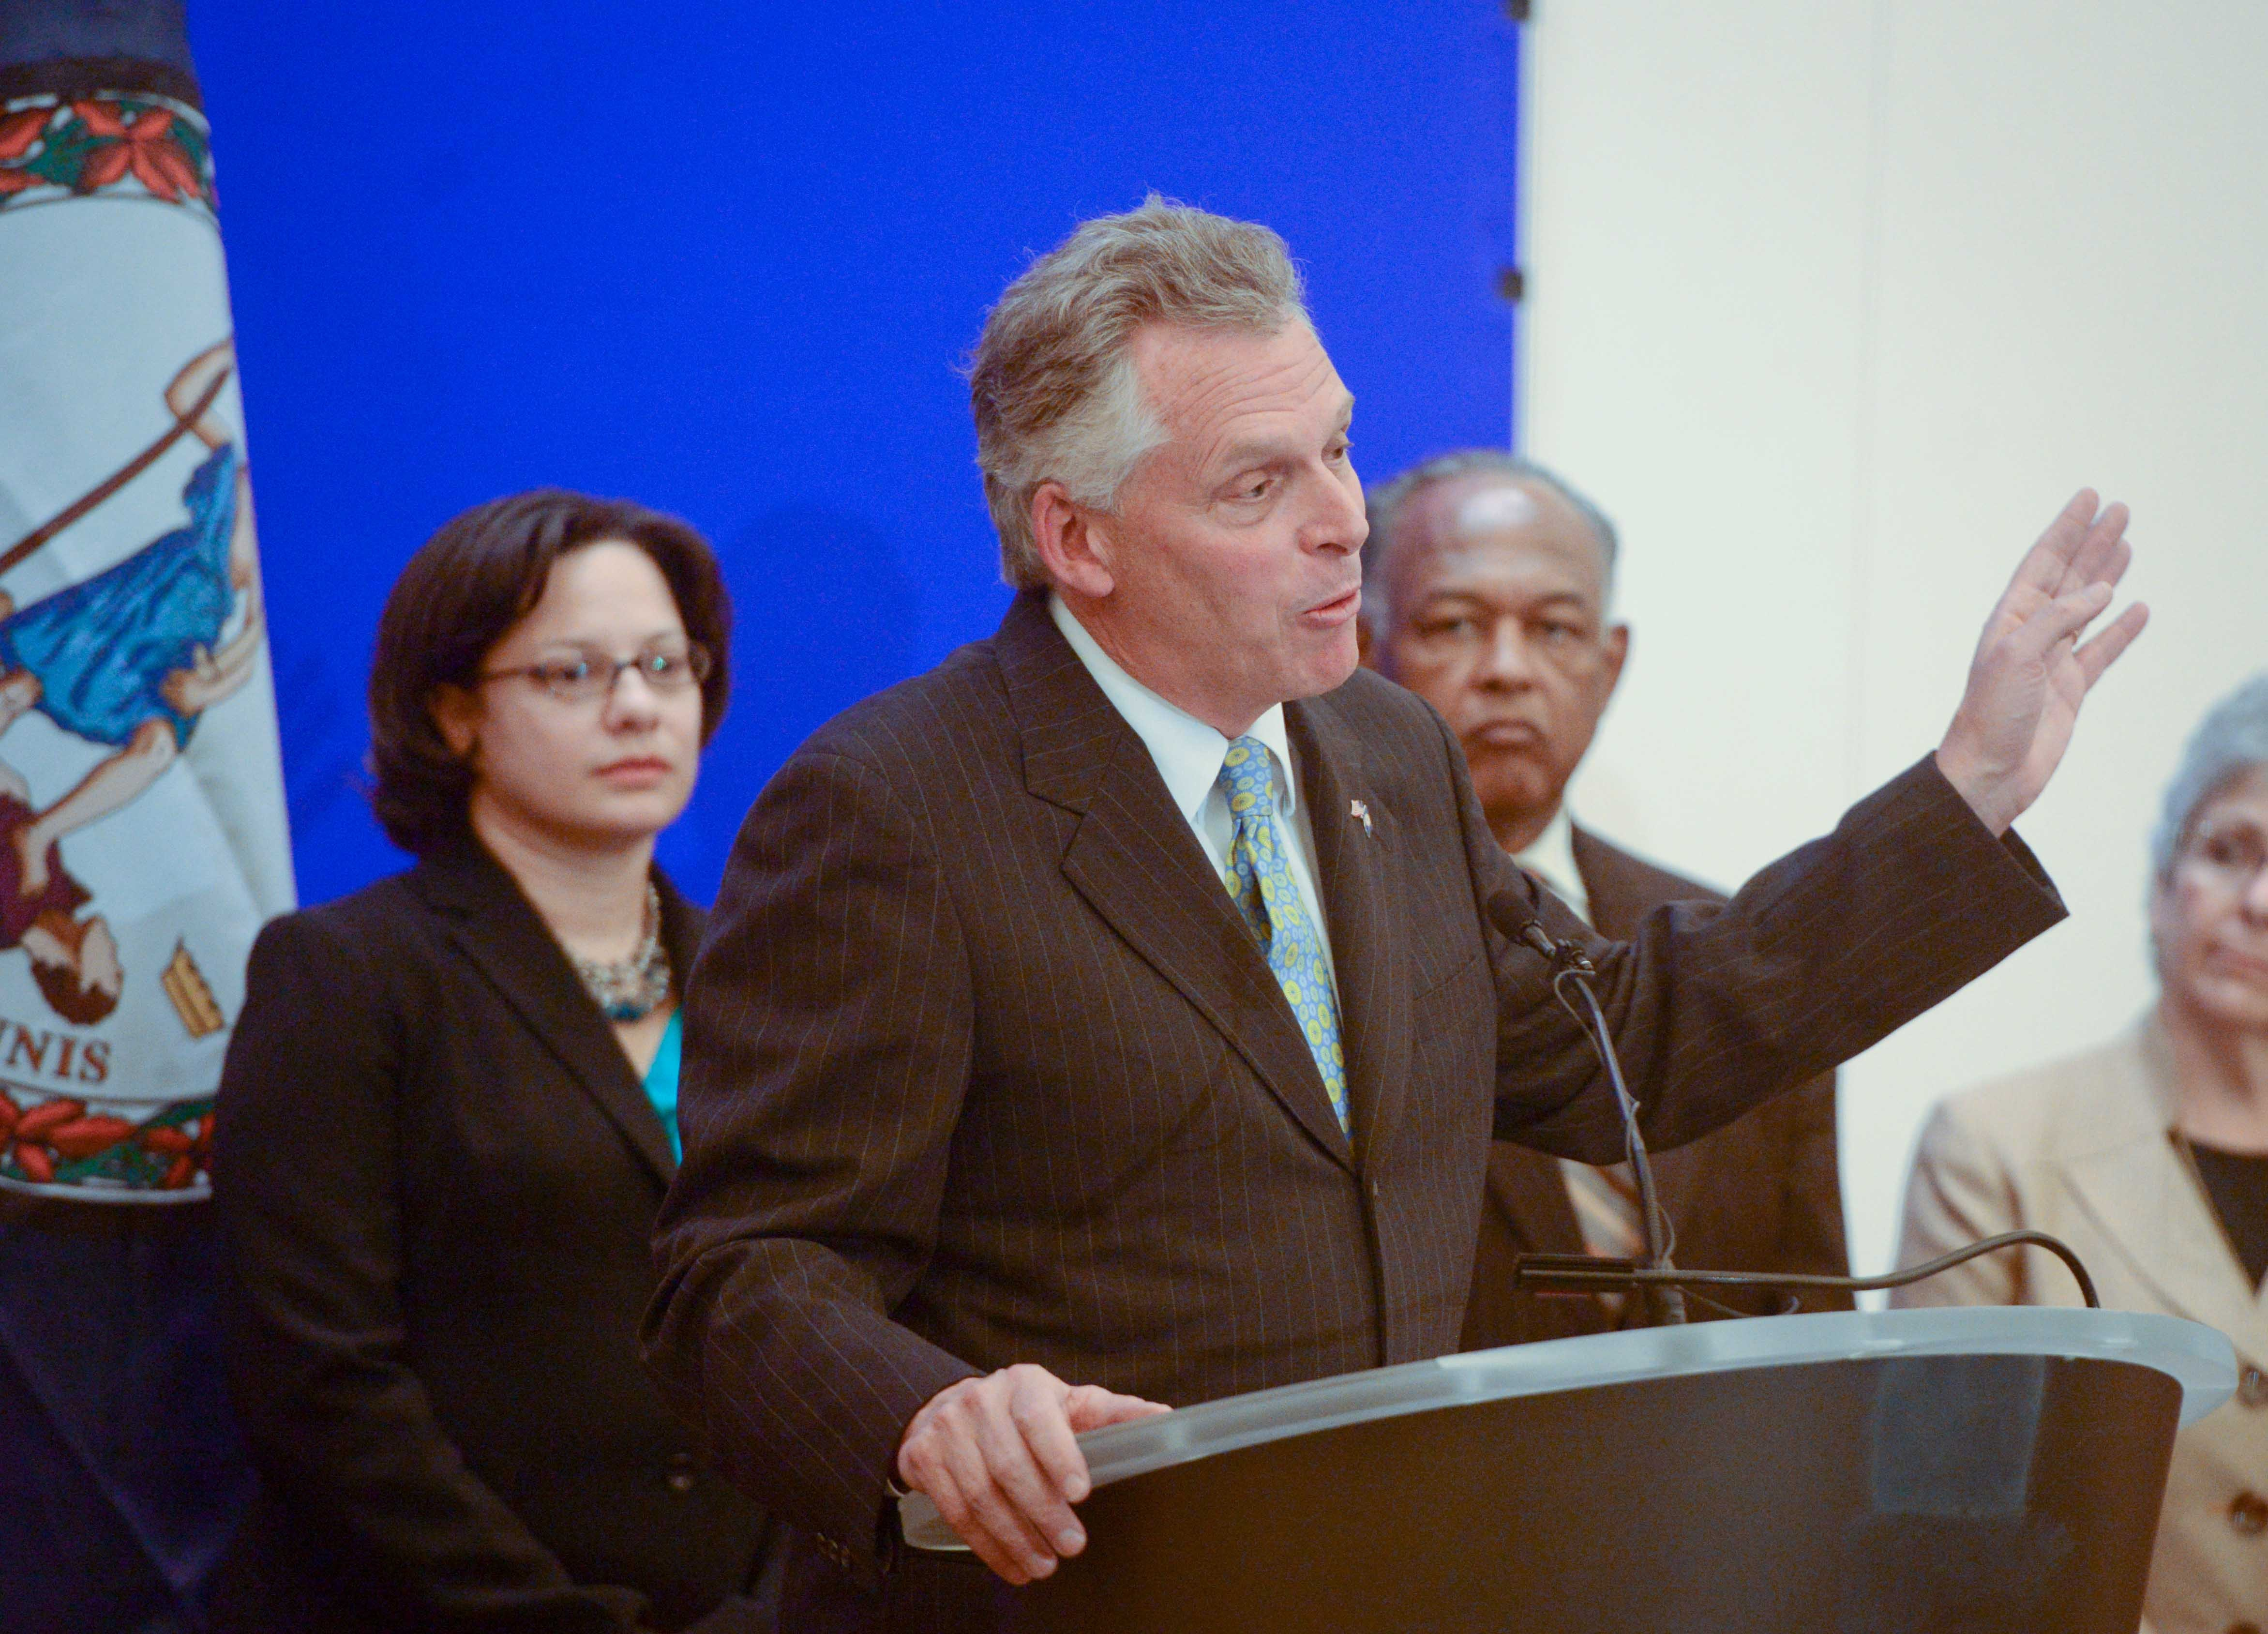 Flanked by Richmond Delegate Jennifer McClellan and Mayor Dwight Jones, Terry McAuliffe speaks to reporters at the Capitol in Richmond Wednesday. - SCOTT ELMQUIST